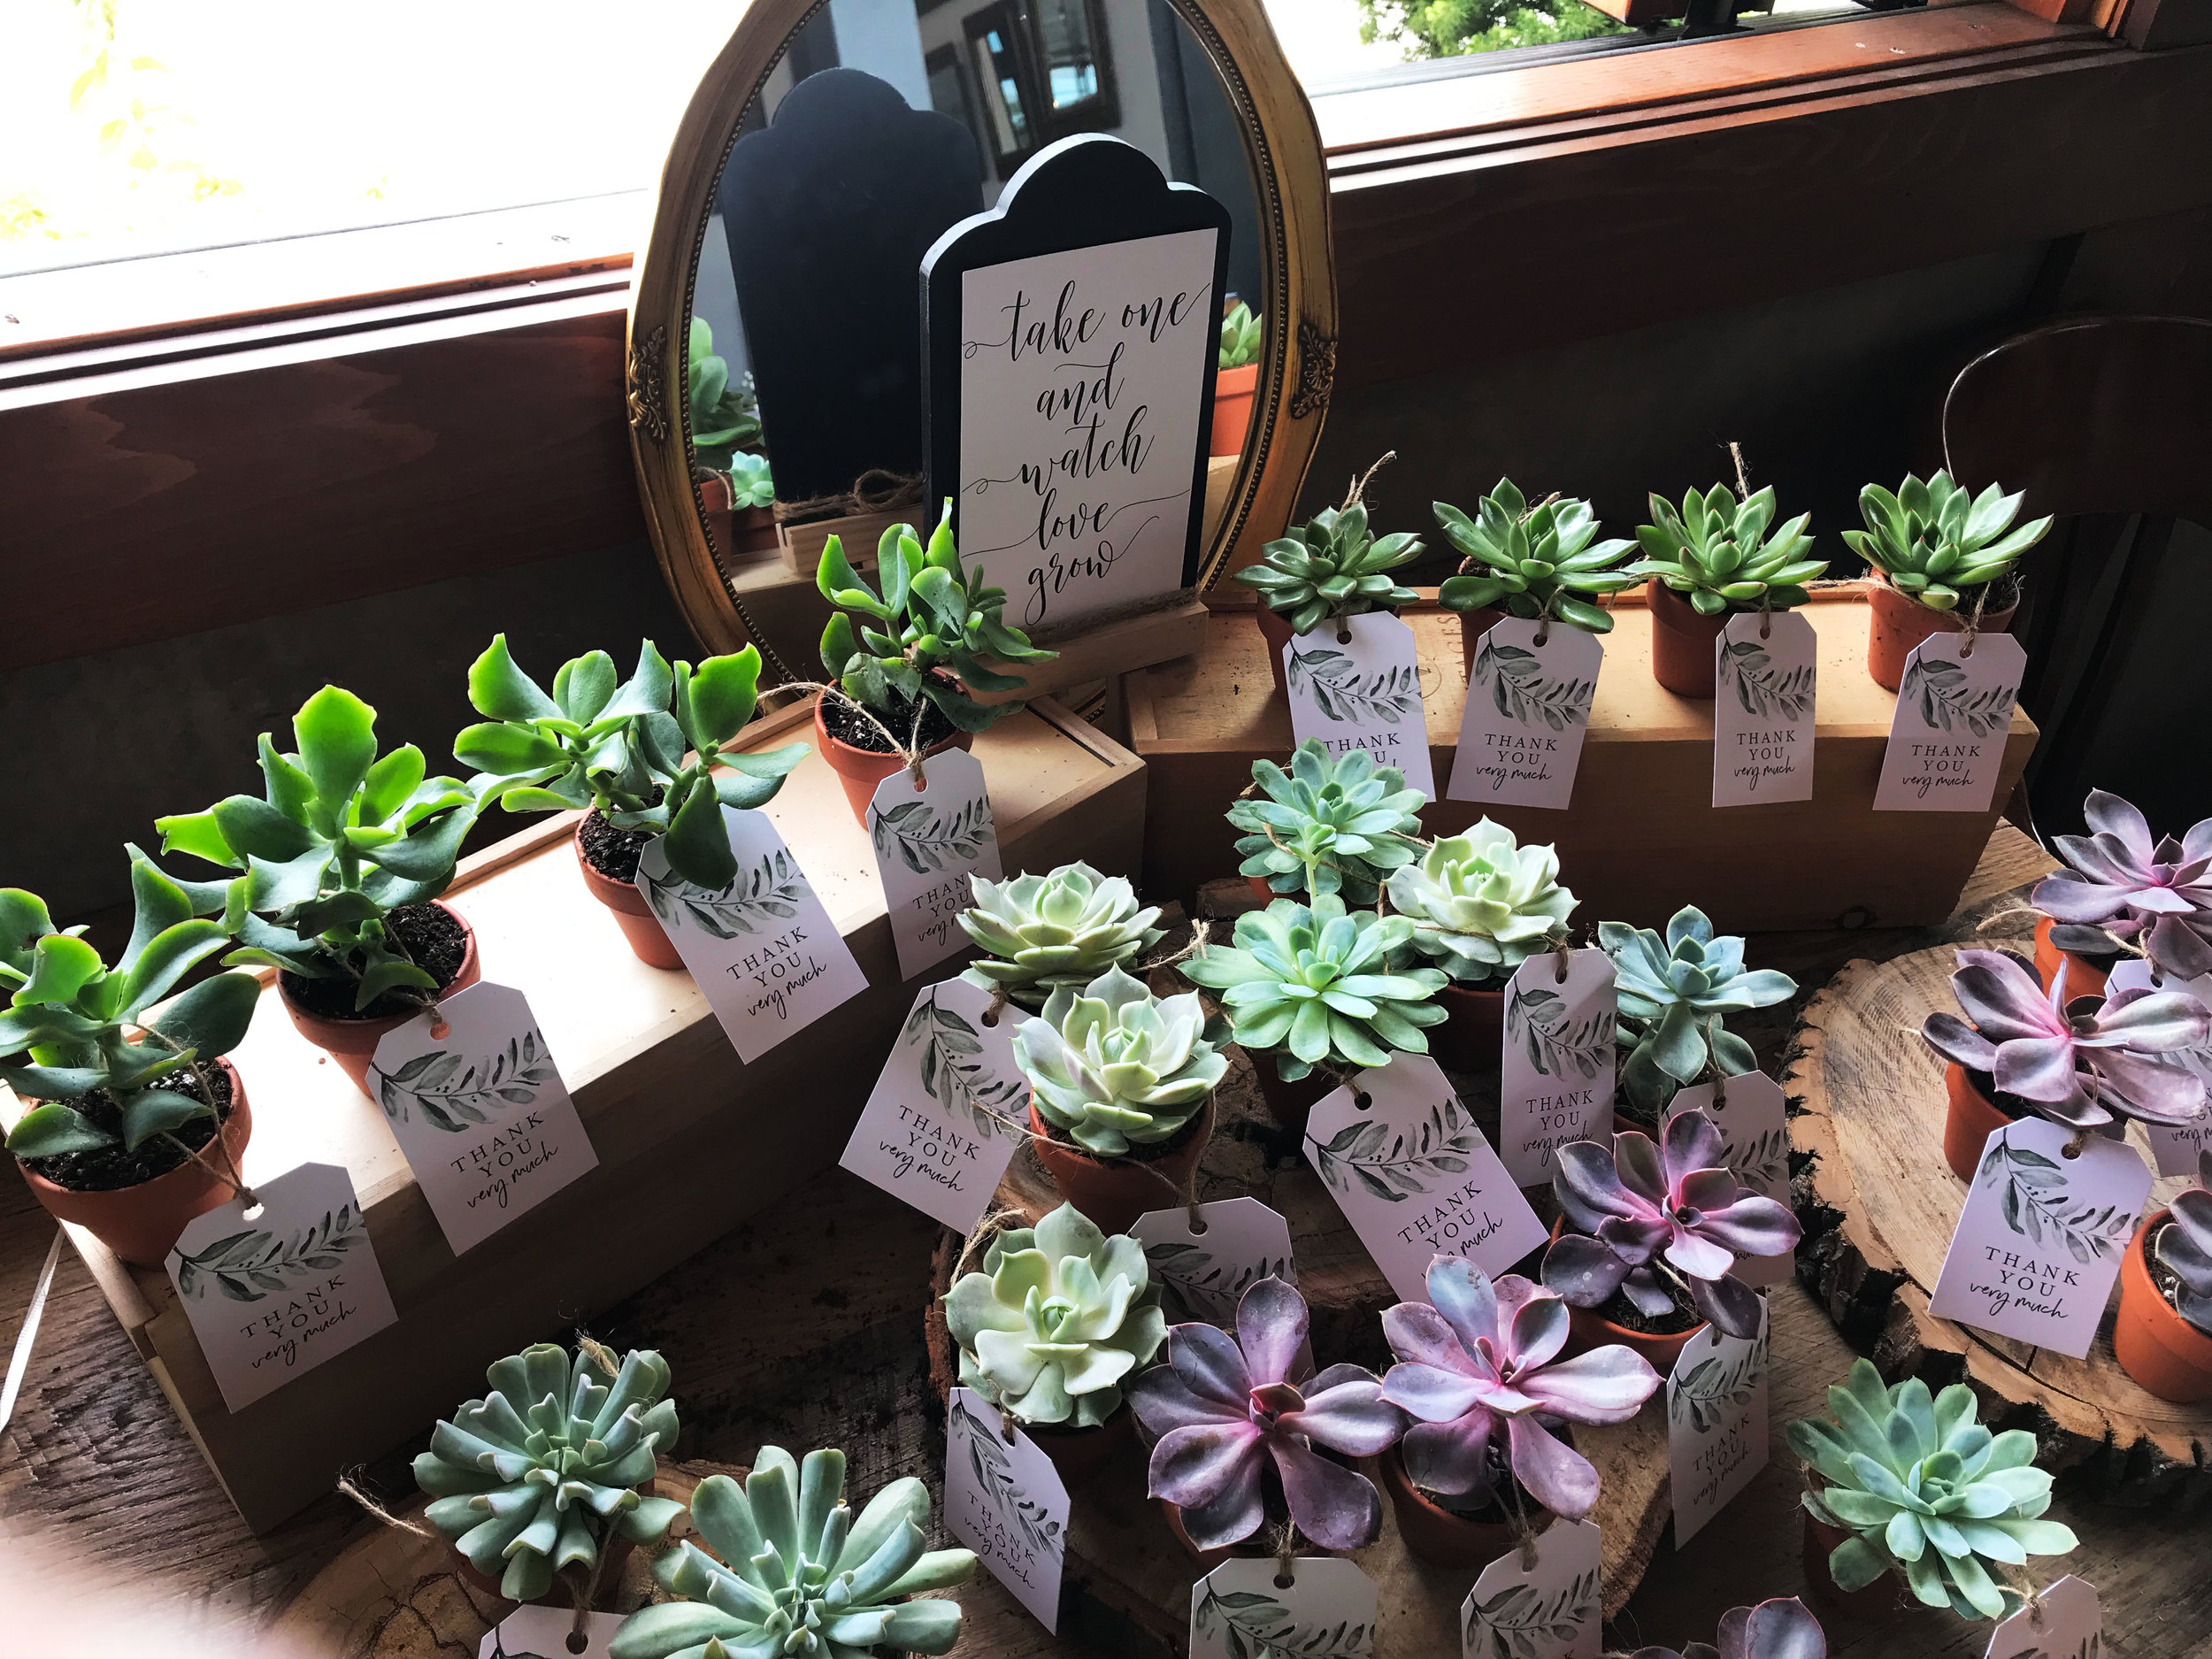 diana-andres-wedding-favours-table-succulent-plants-greenery-thank-you-tags-tablescape.jpg